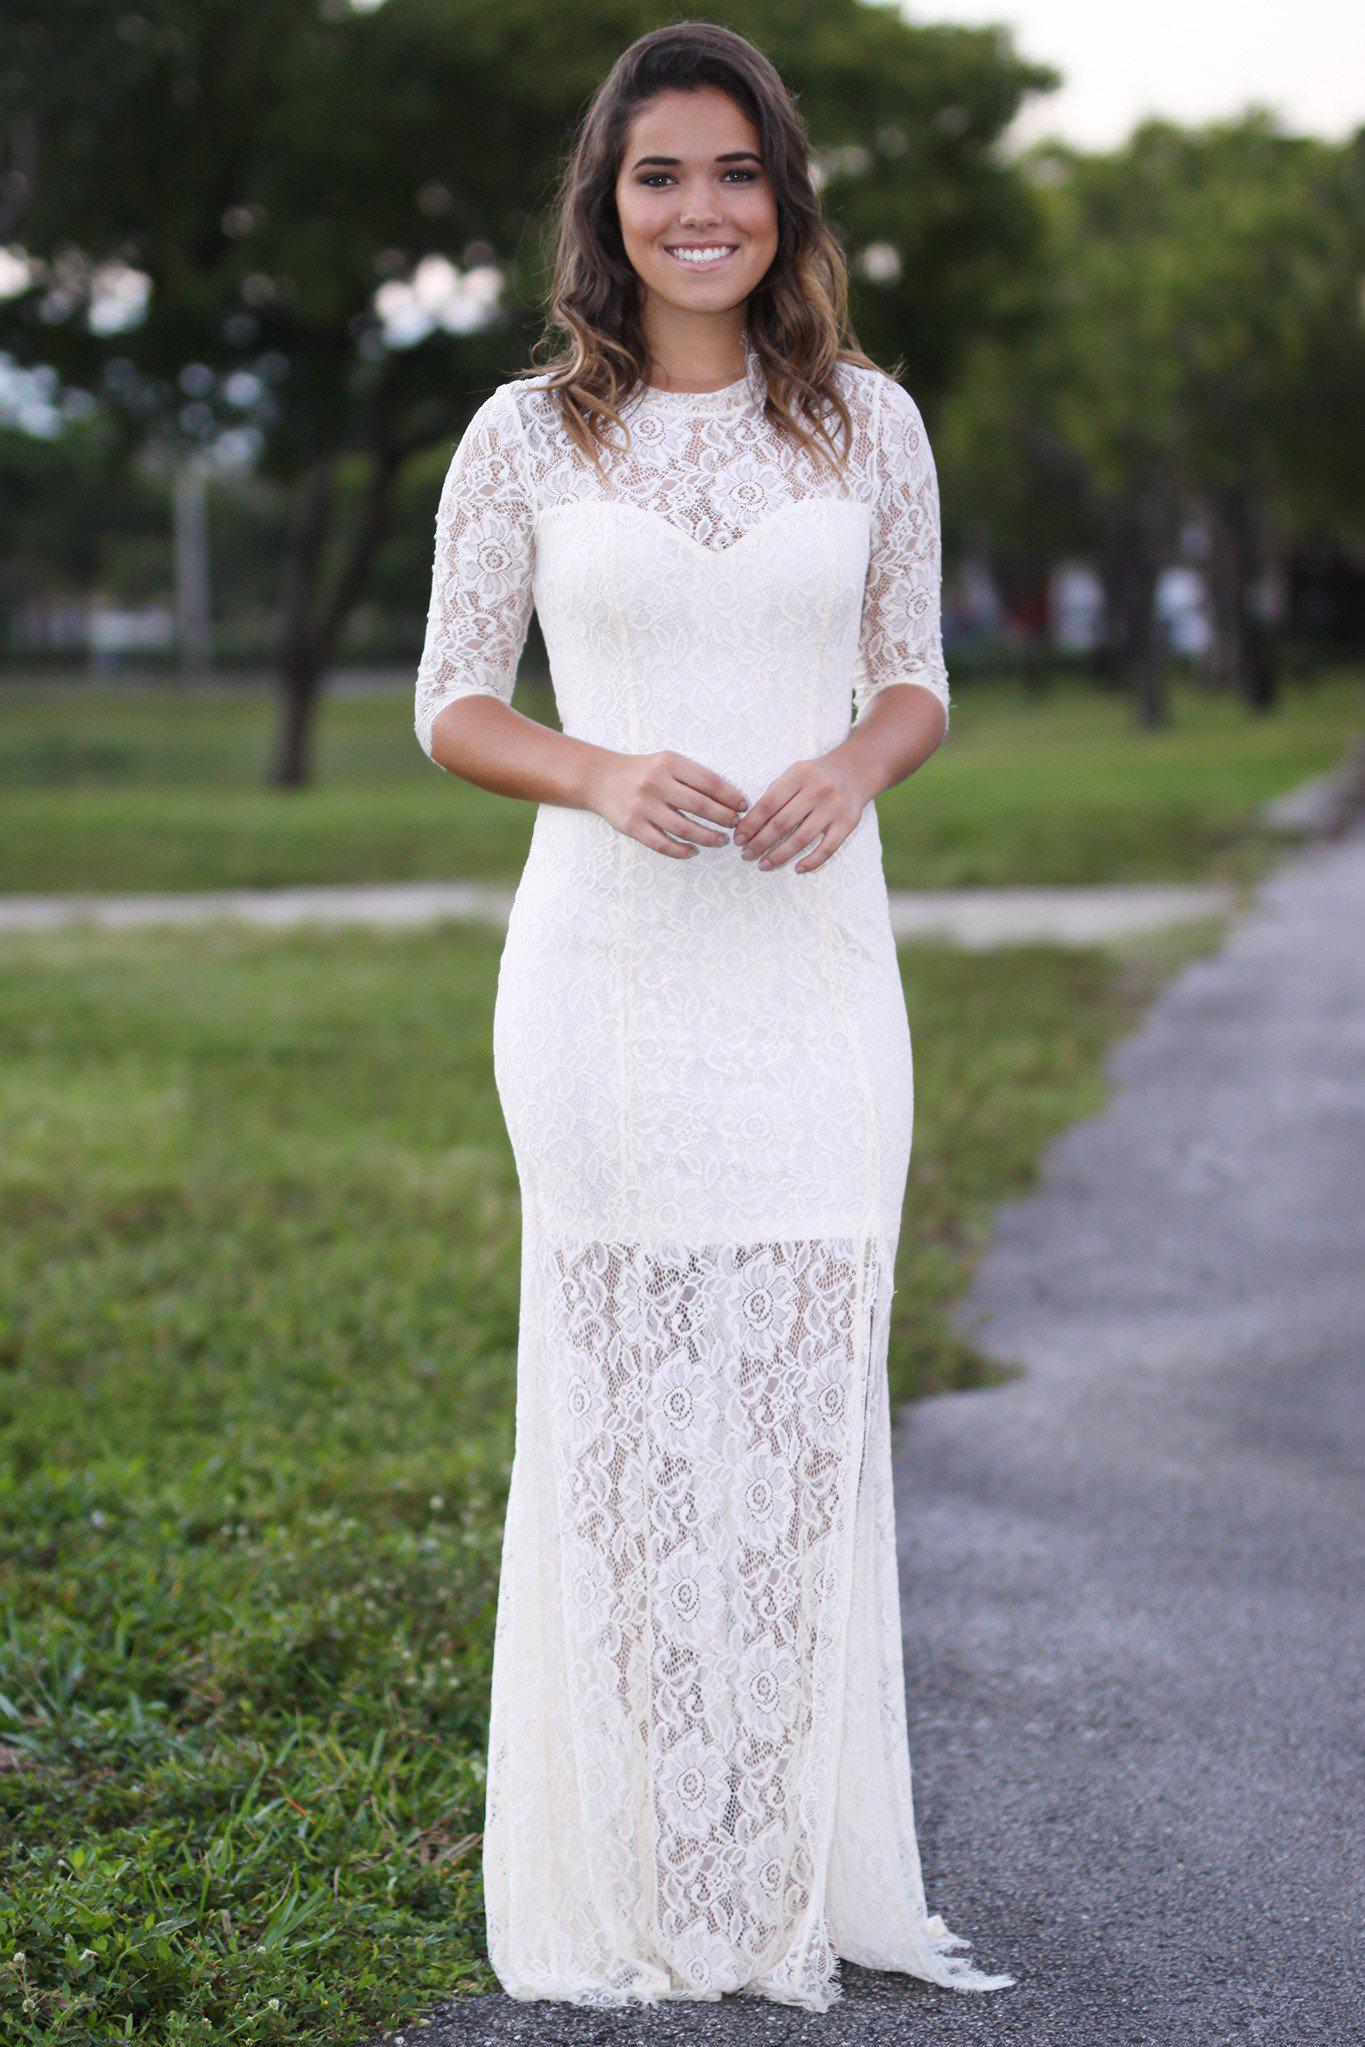 Beige Lace Maxi Dress with 3/4 Sleeves | Maxi Dresses – Saved by ...